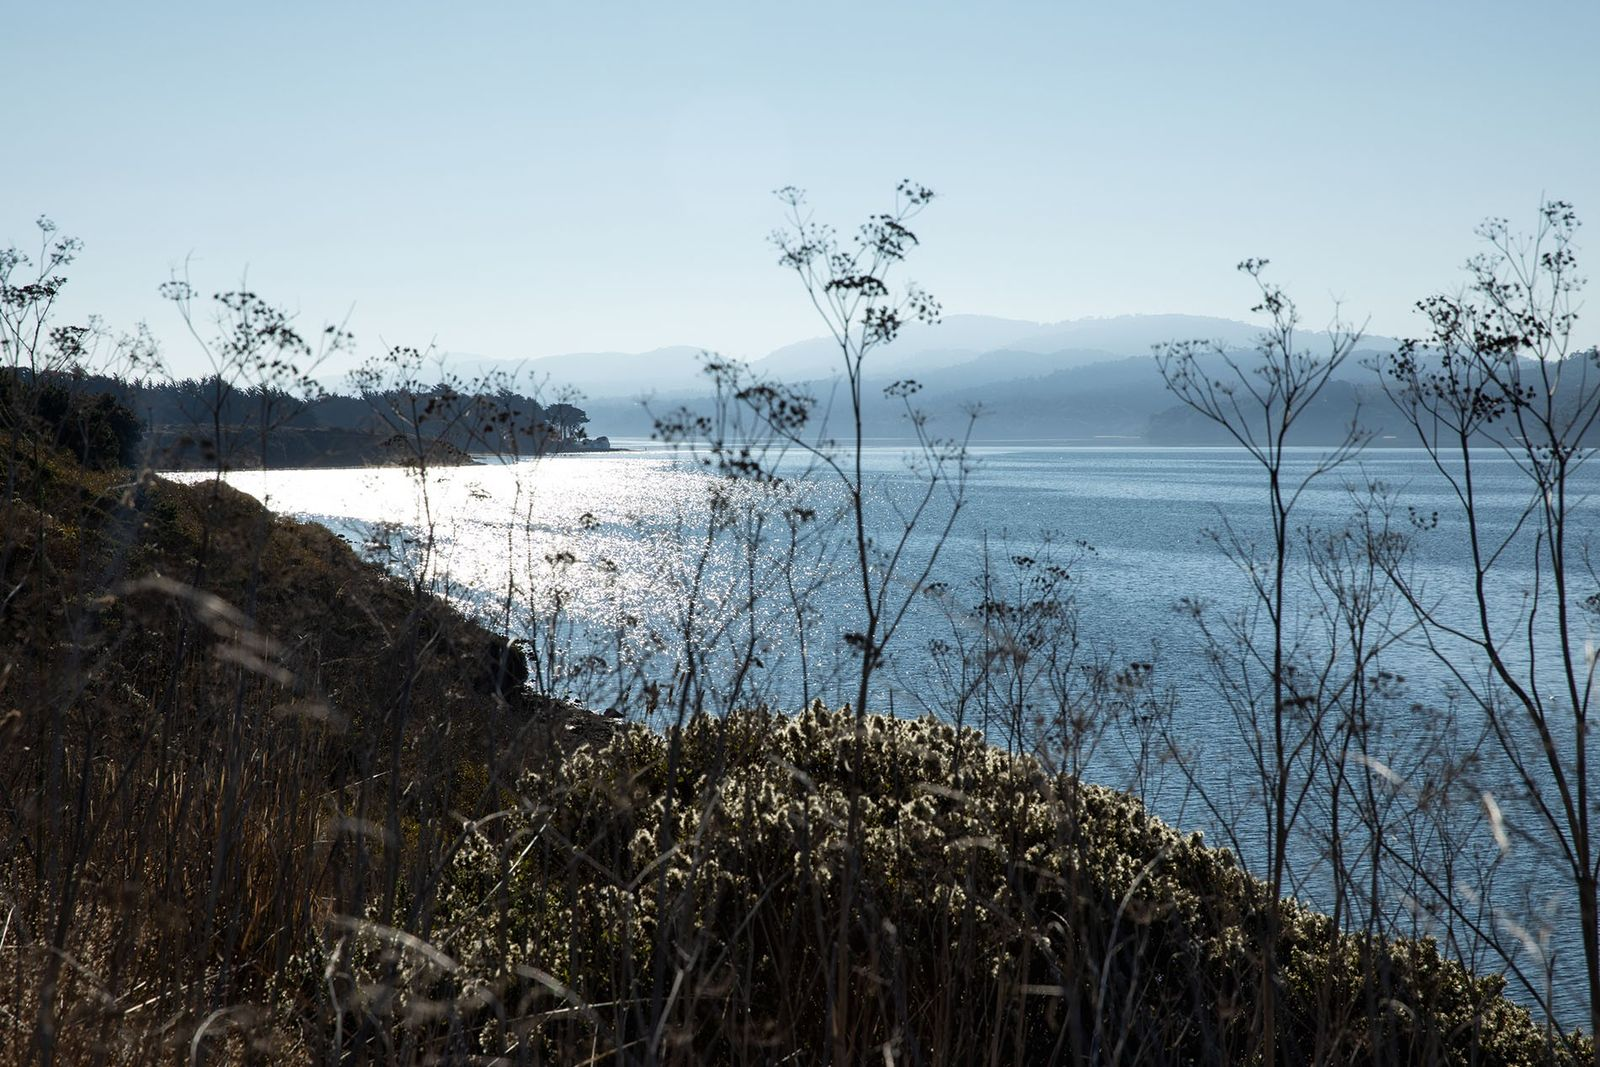 On the California Cheese Trail, looking out over Tomales Bay.